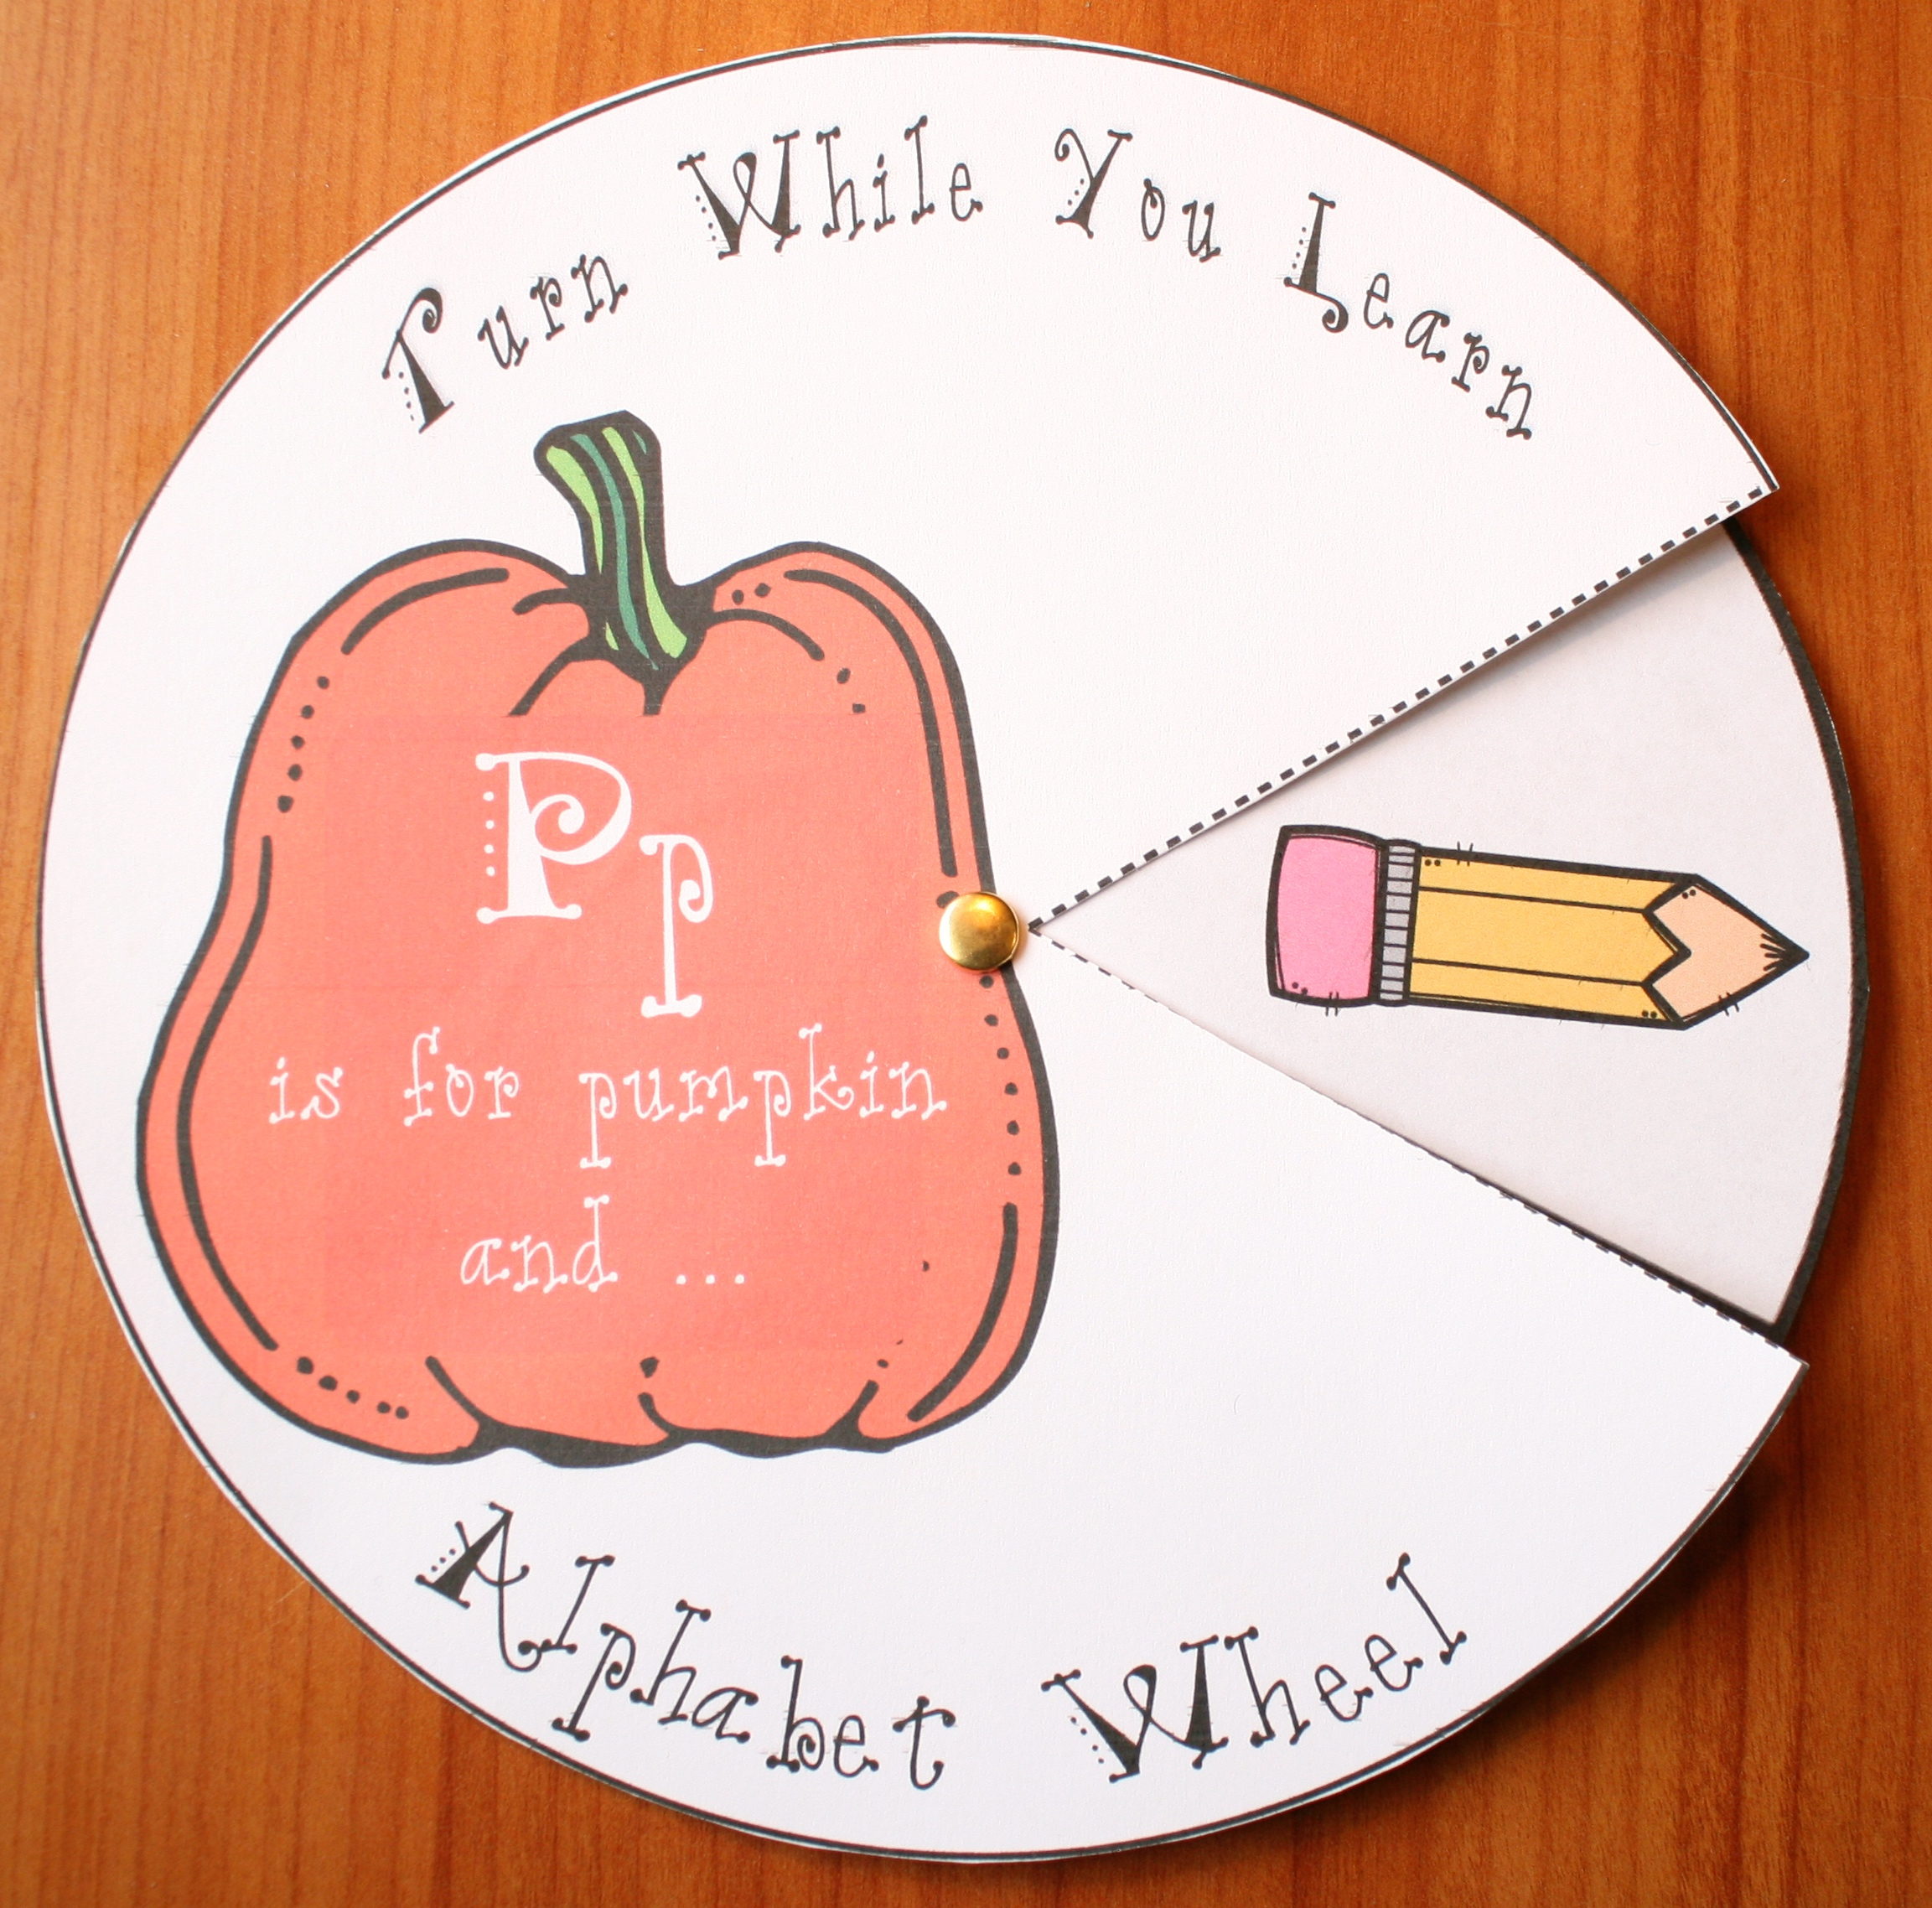 P is for pumpkin alpha wheel, alphabet wheels, words that begin with P, P nouns, alphabet crafts, letter crafts, alphabet emergent readers, letter p worksheets,